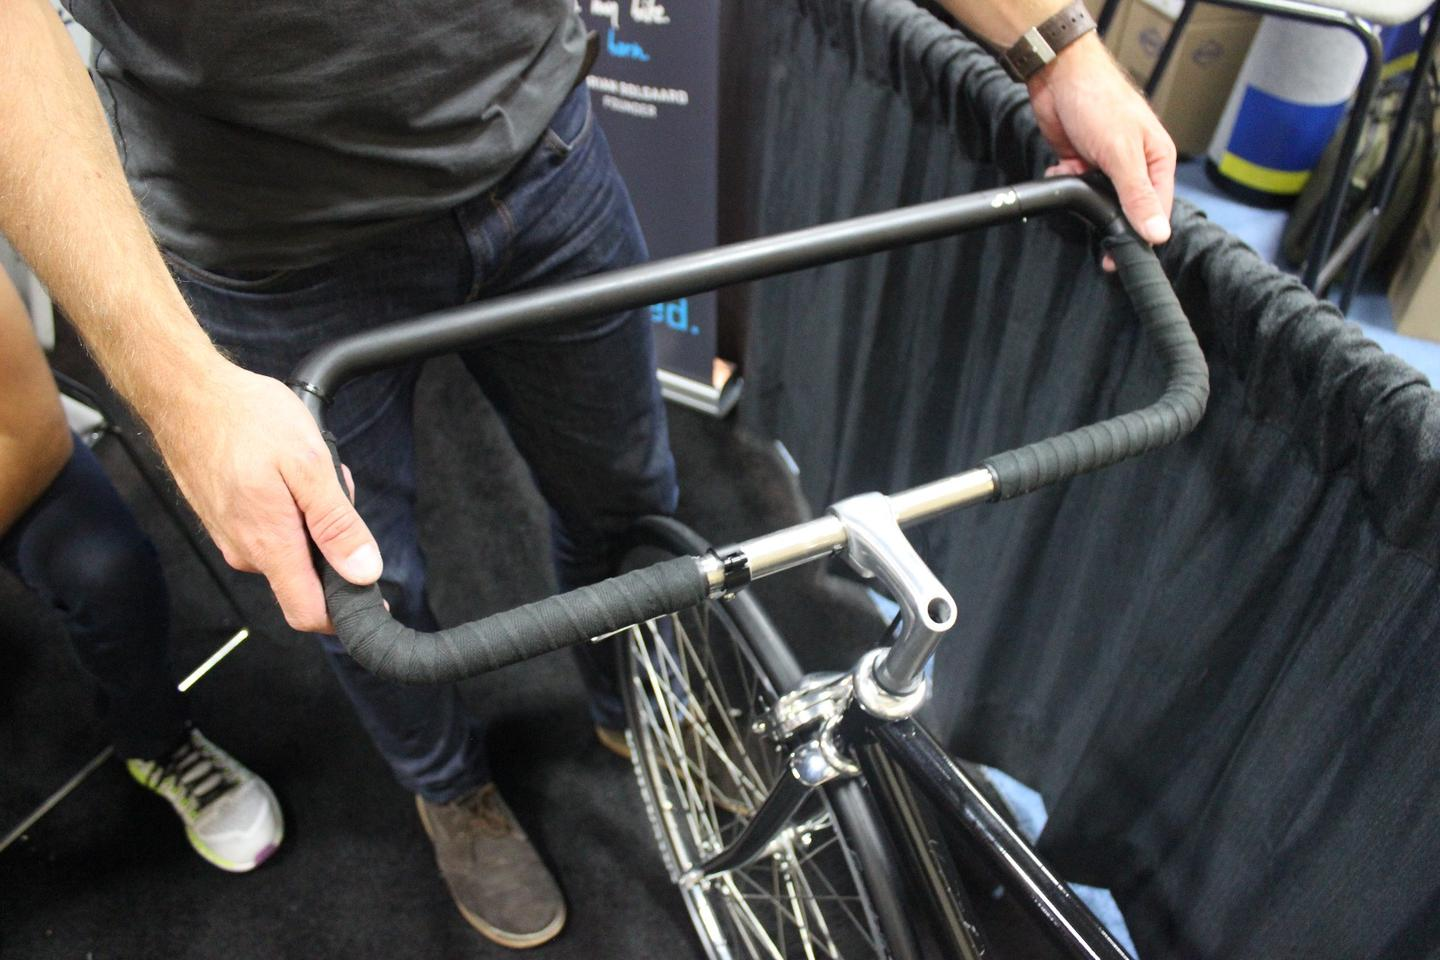 The firm outed the Denny Handlebar Lock at this year's Interbike